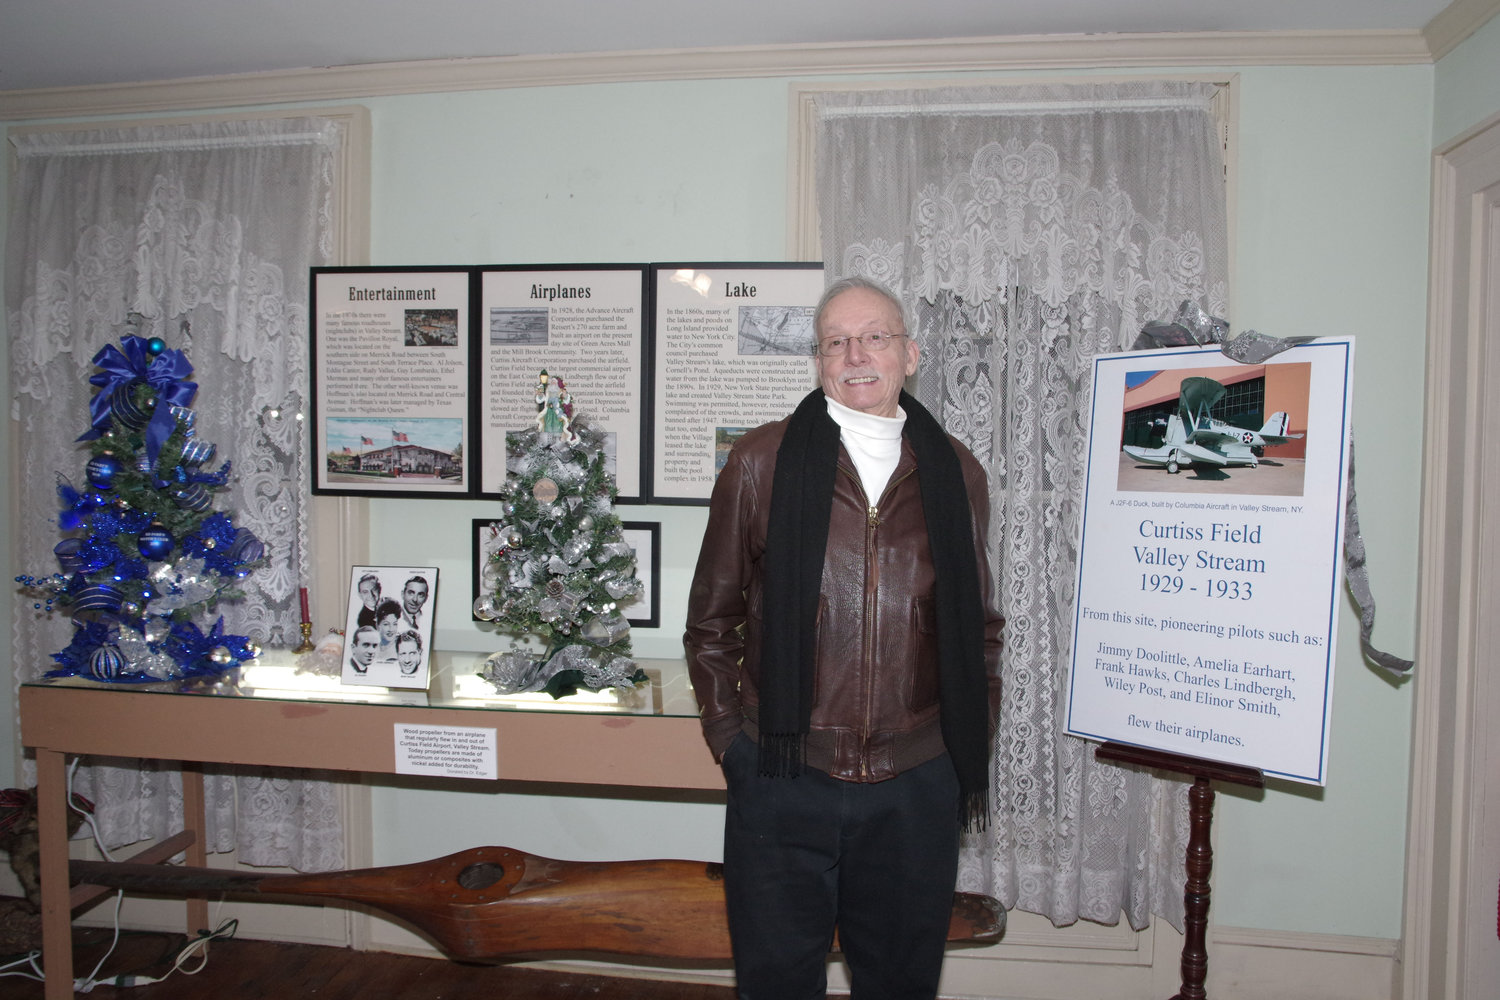 Historical Society President Guy Ferrara gave presentations on Valley Stream's rich aviation history.